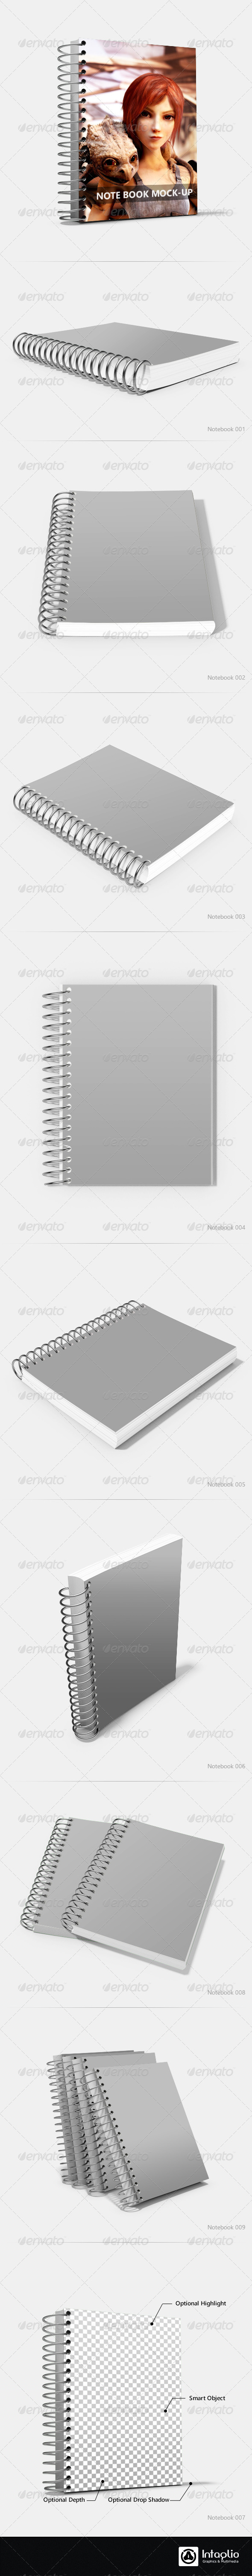 GraphicRiver Spiral Notebook Mock-Up 2418400